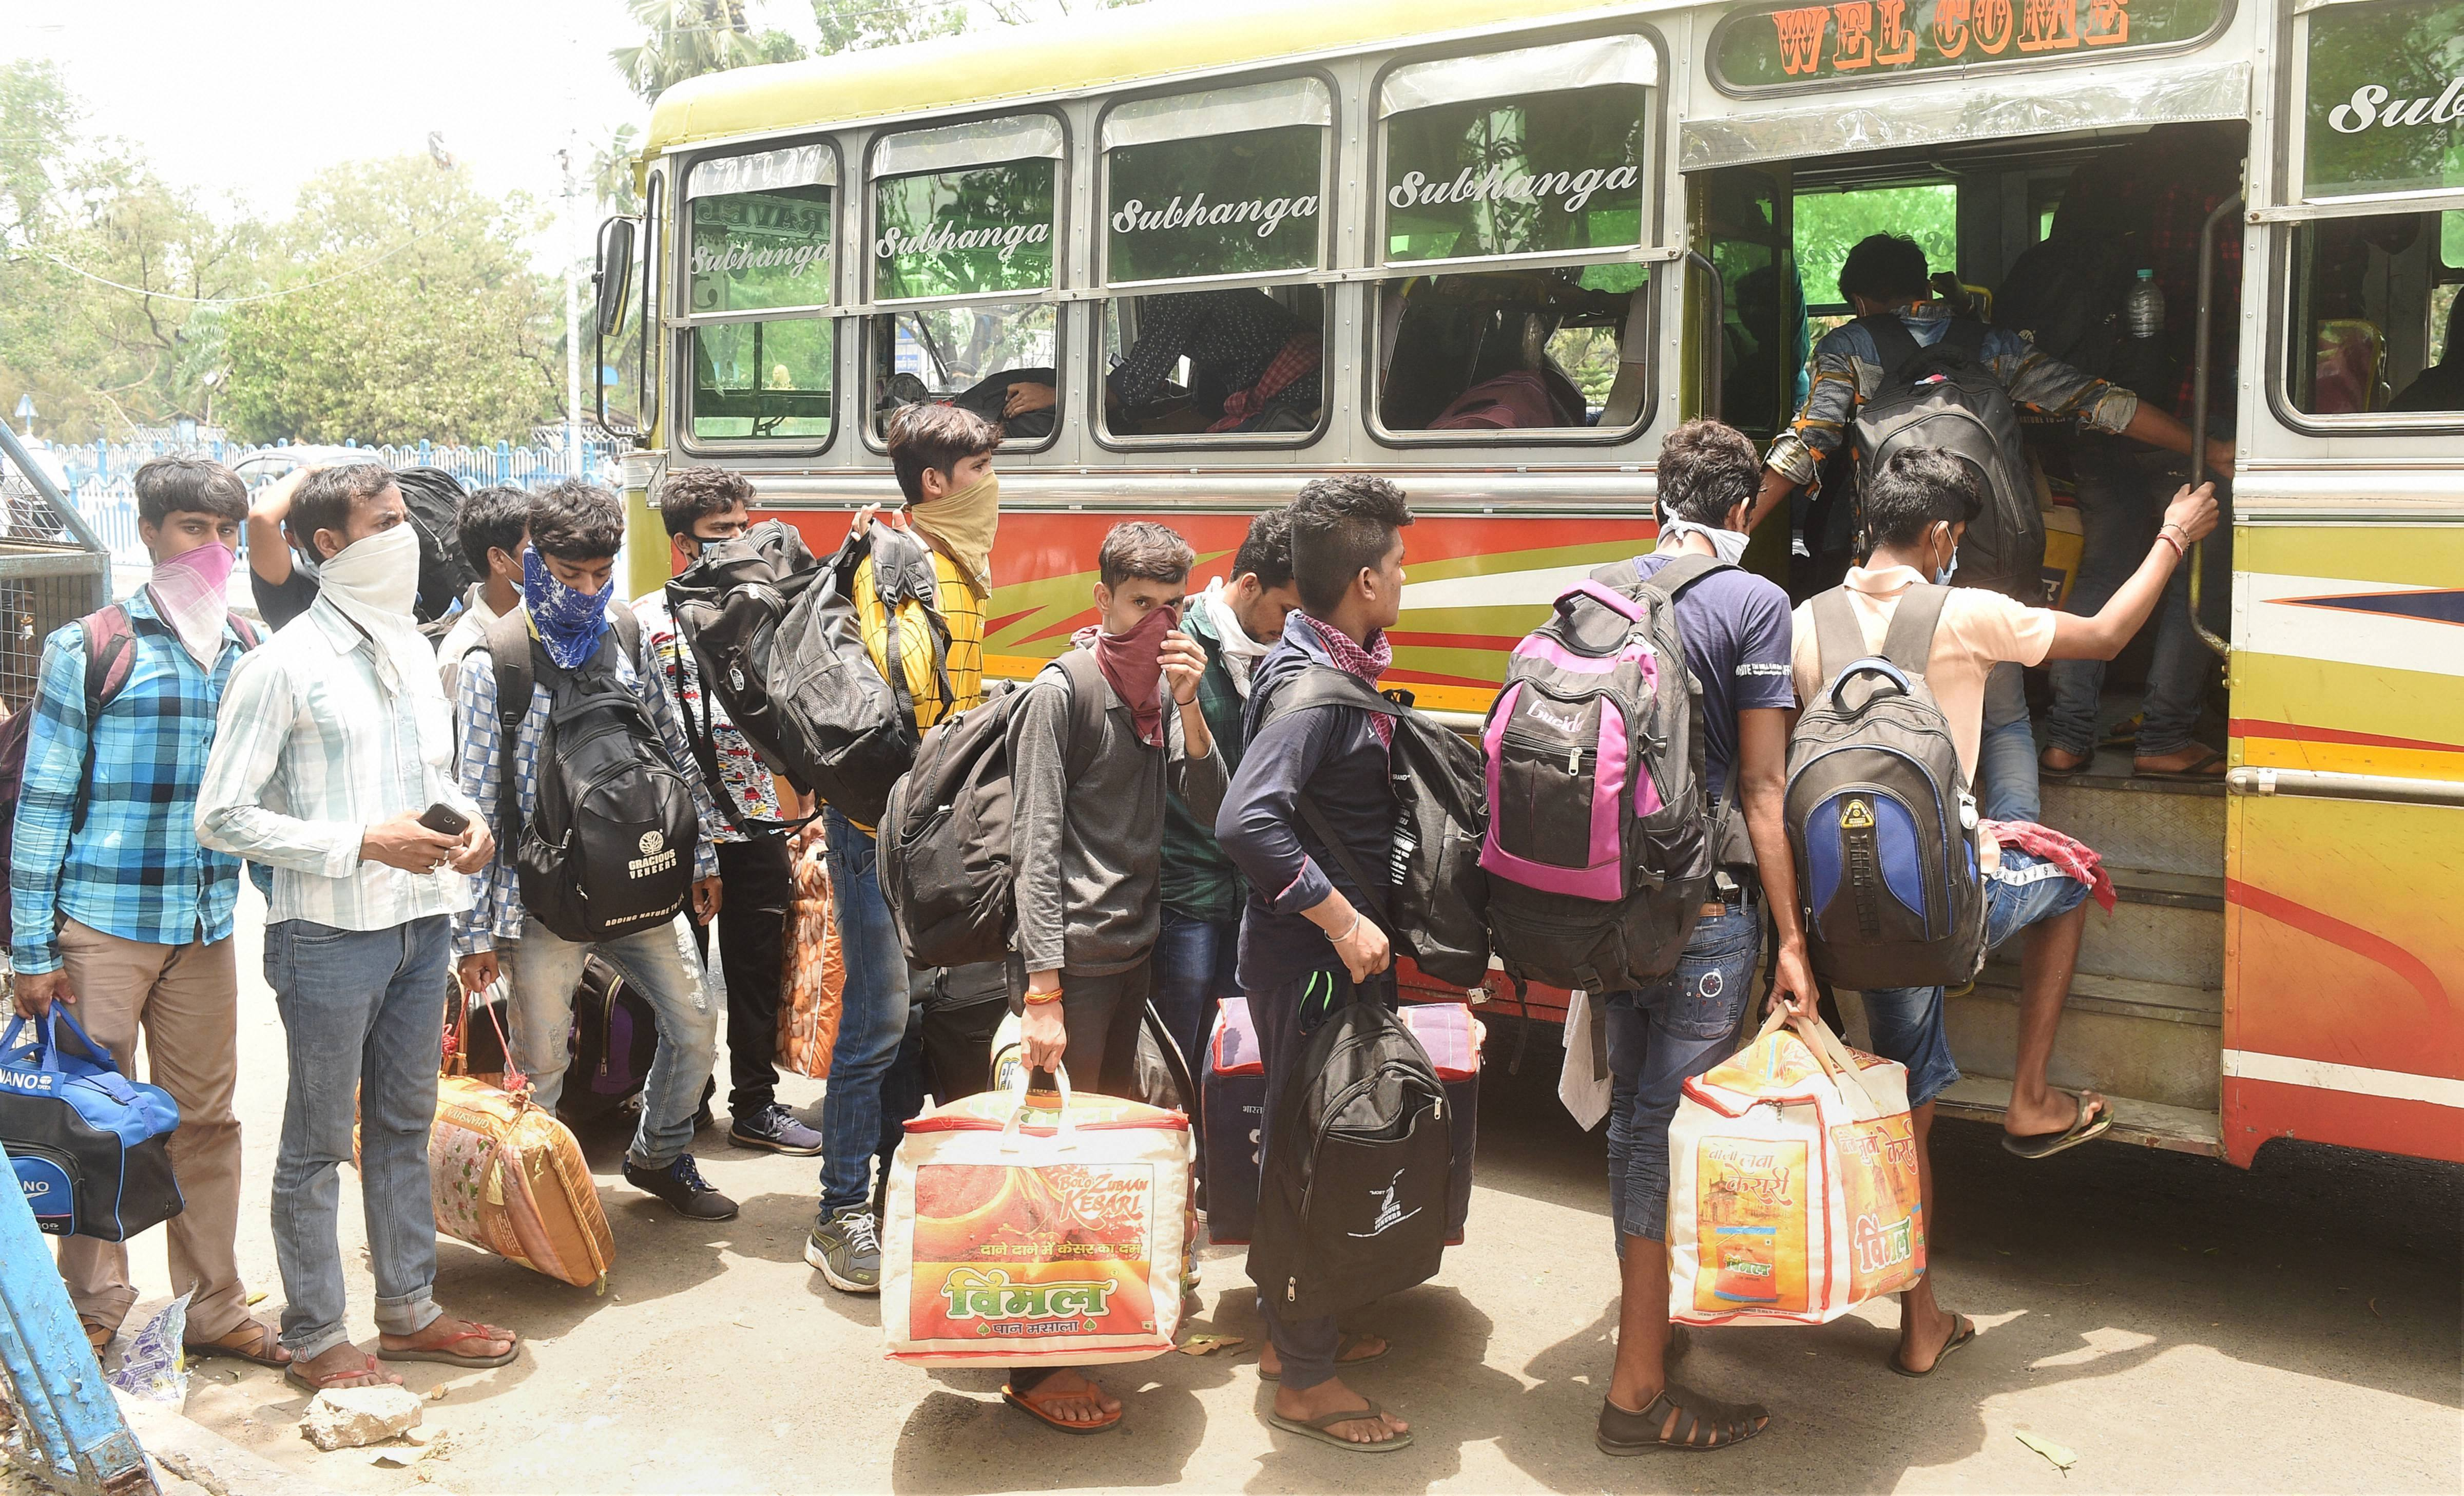 Migrants from Ahmedabad board a bus for South 24 Parganas, during the ongoing Covid-19 nationwide lockdown, in Calcutta, Wednesday, May 27, 2020.